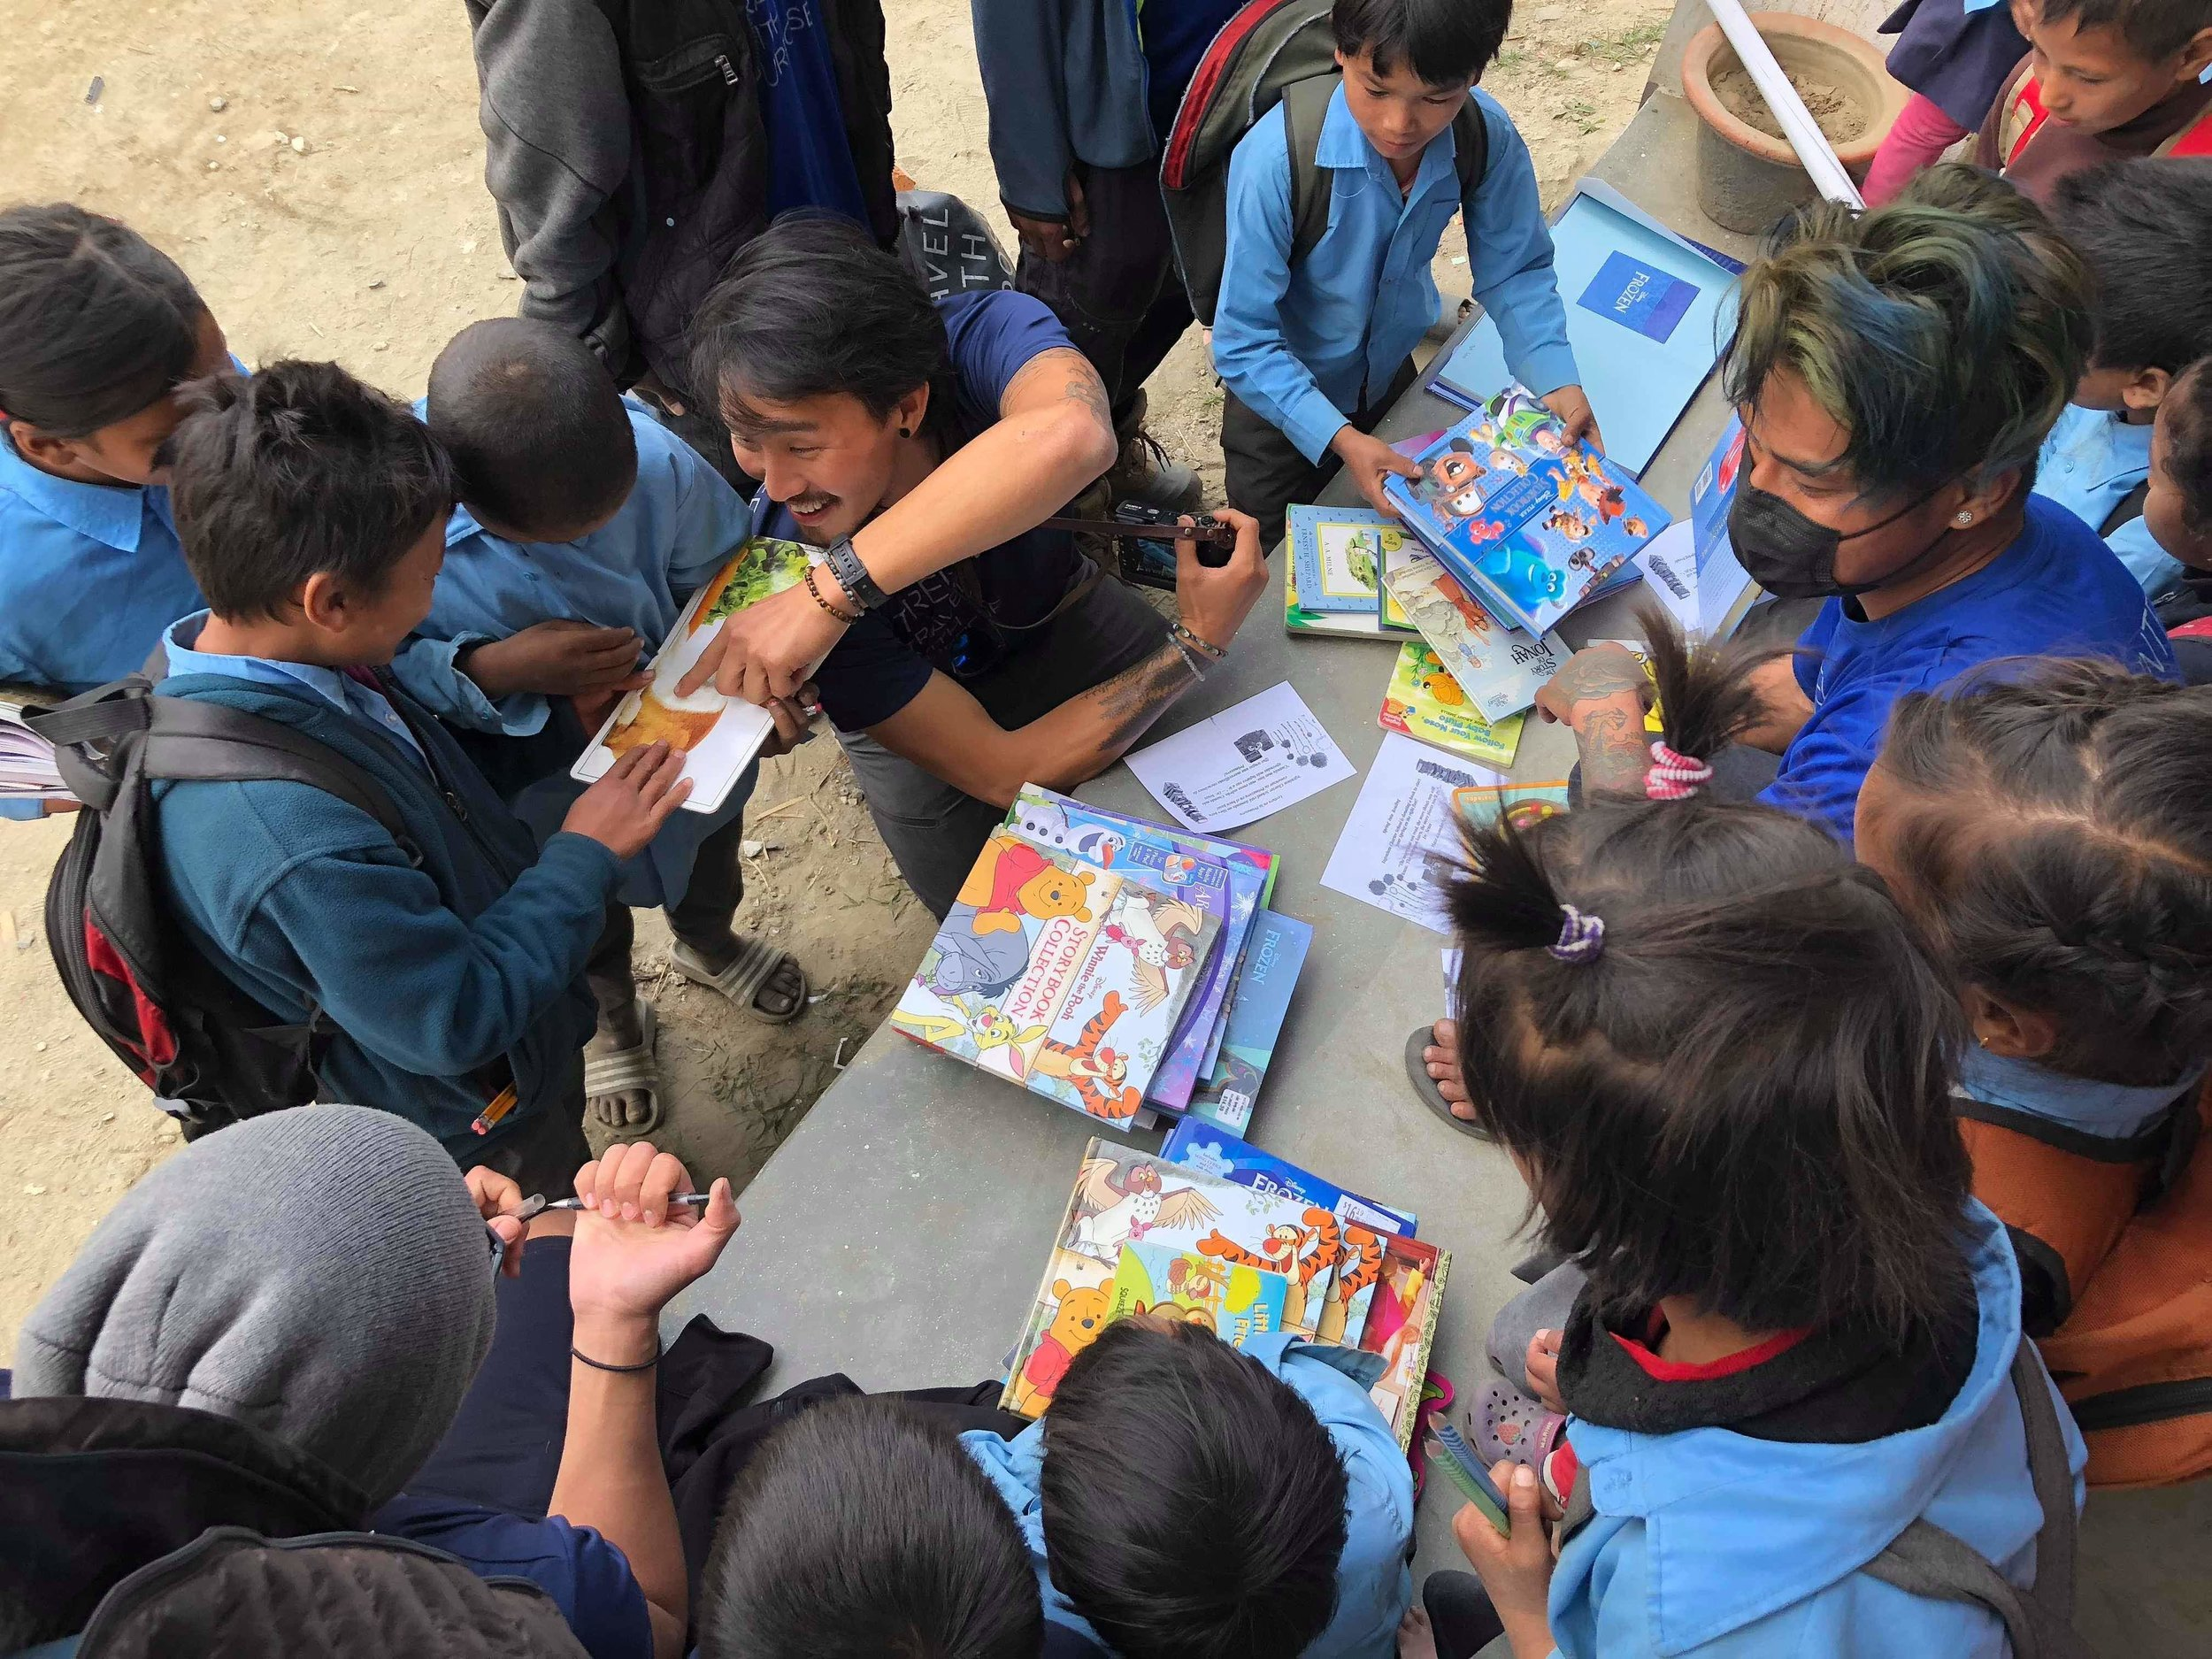 Donated books and supplies are eagerly received by school children